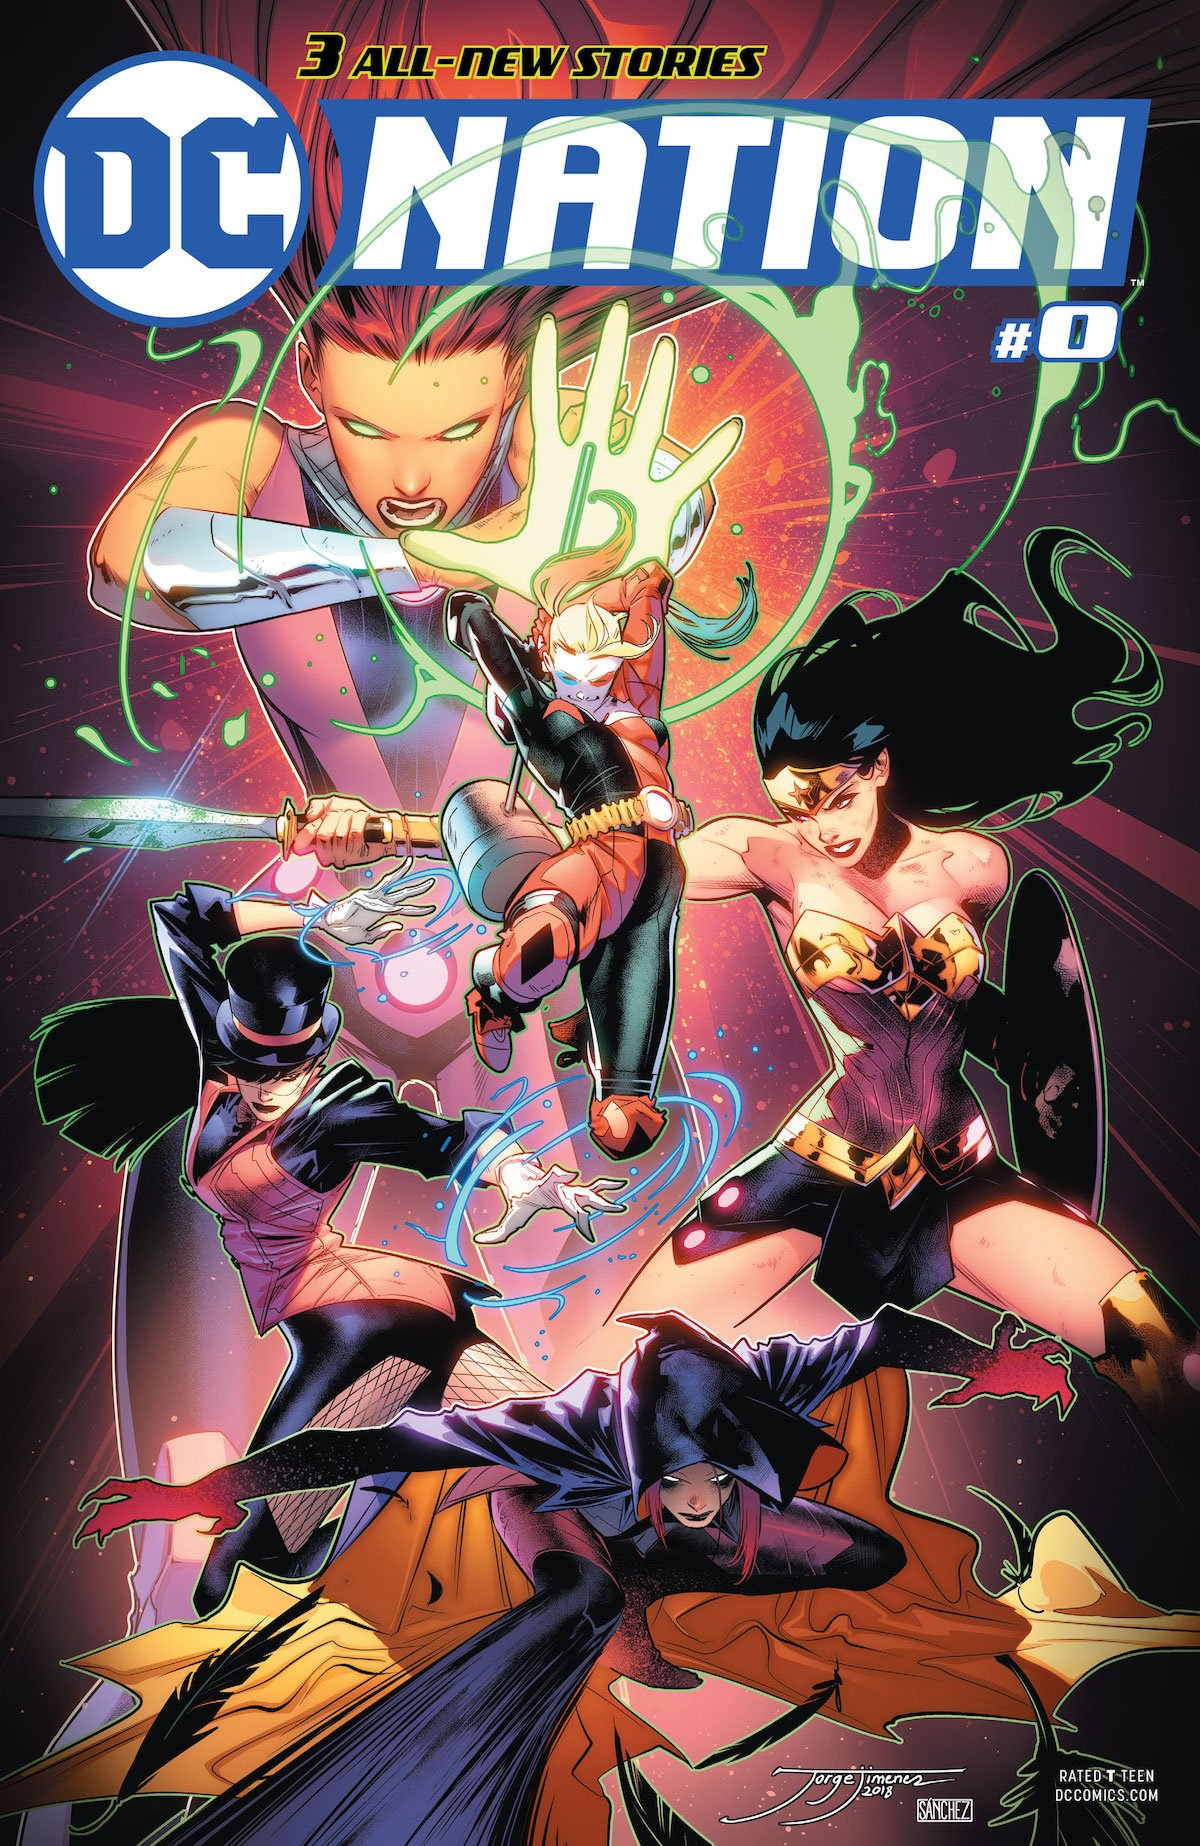 DC Nation #0 cover No Justice